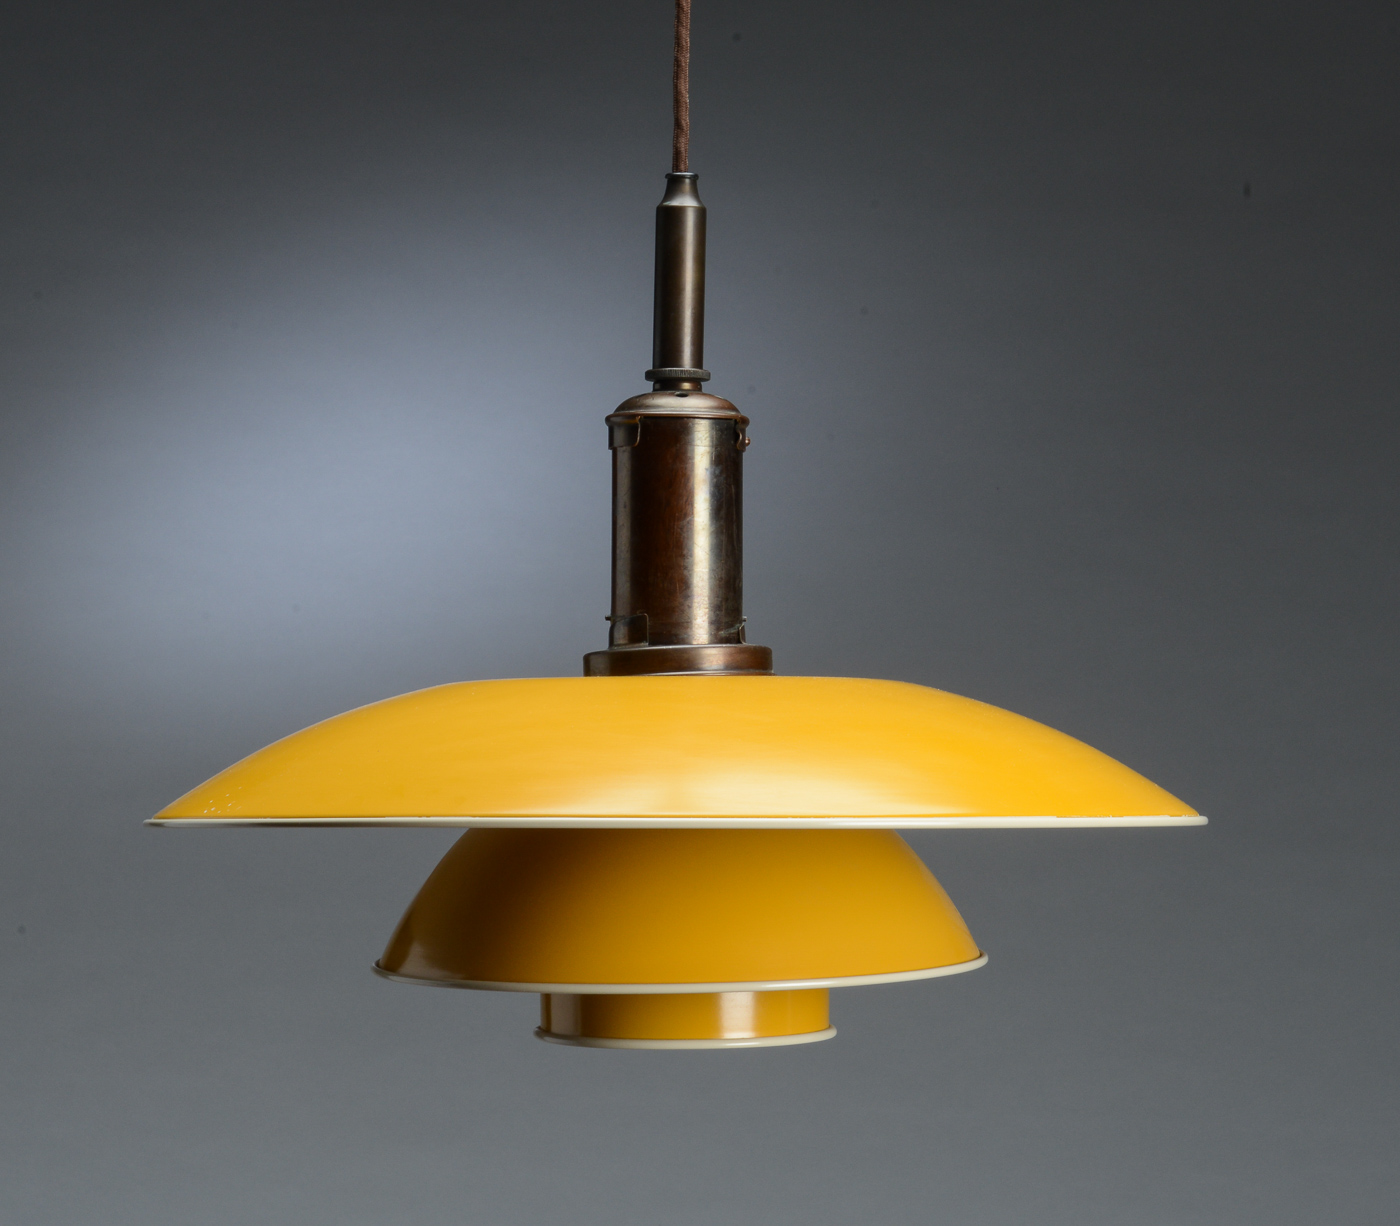 Worldantique poul henningsen ph 4 4 pendant lamp with shade ph 4 4 pendant lamp with shade yellow painted metal mounted on wire shade holder marked ph4200 patented greentooth Images